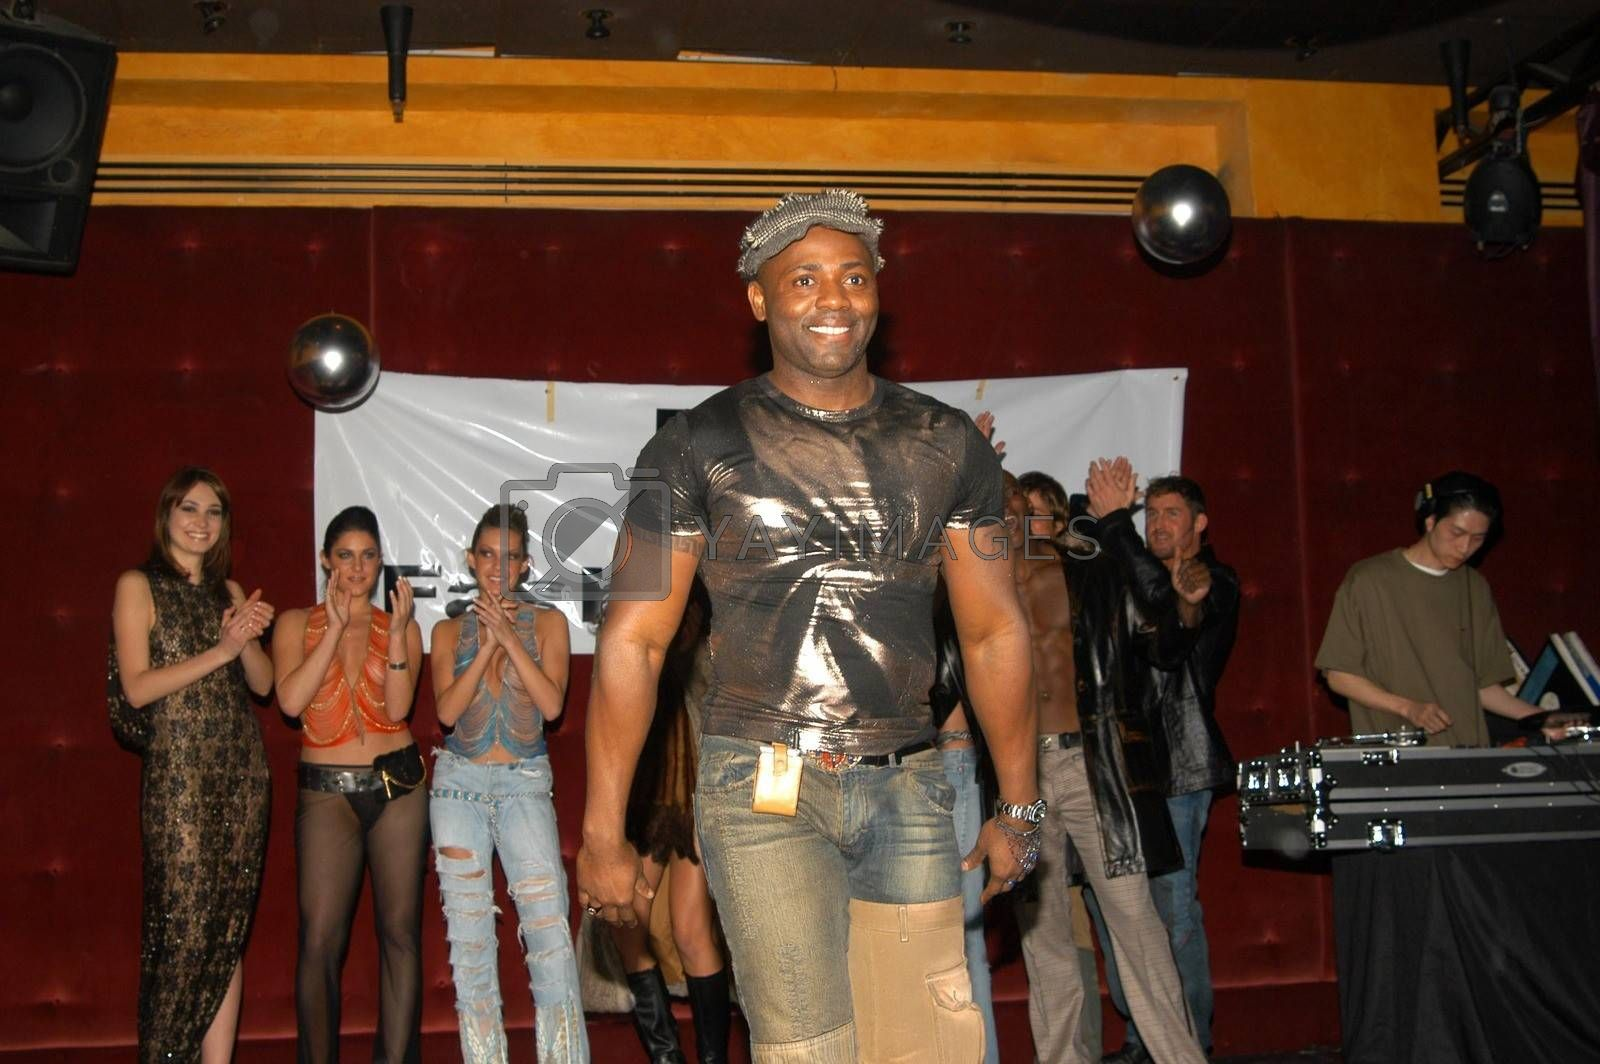 Designer Elliot Tommy at the fashion show thrown by Fashion Paige, Barfly, West Hollywood, CA 12-27-02